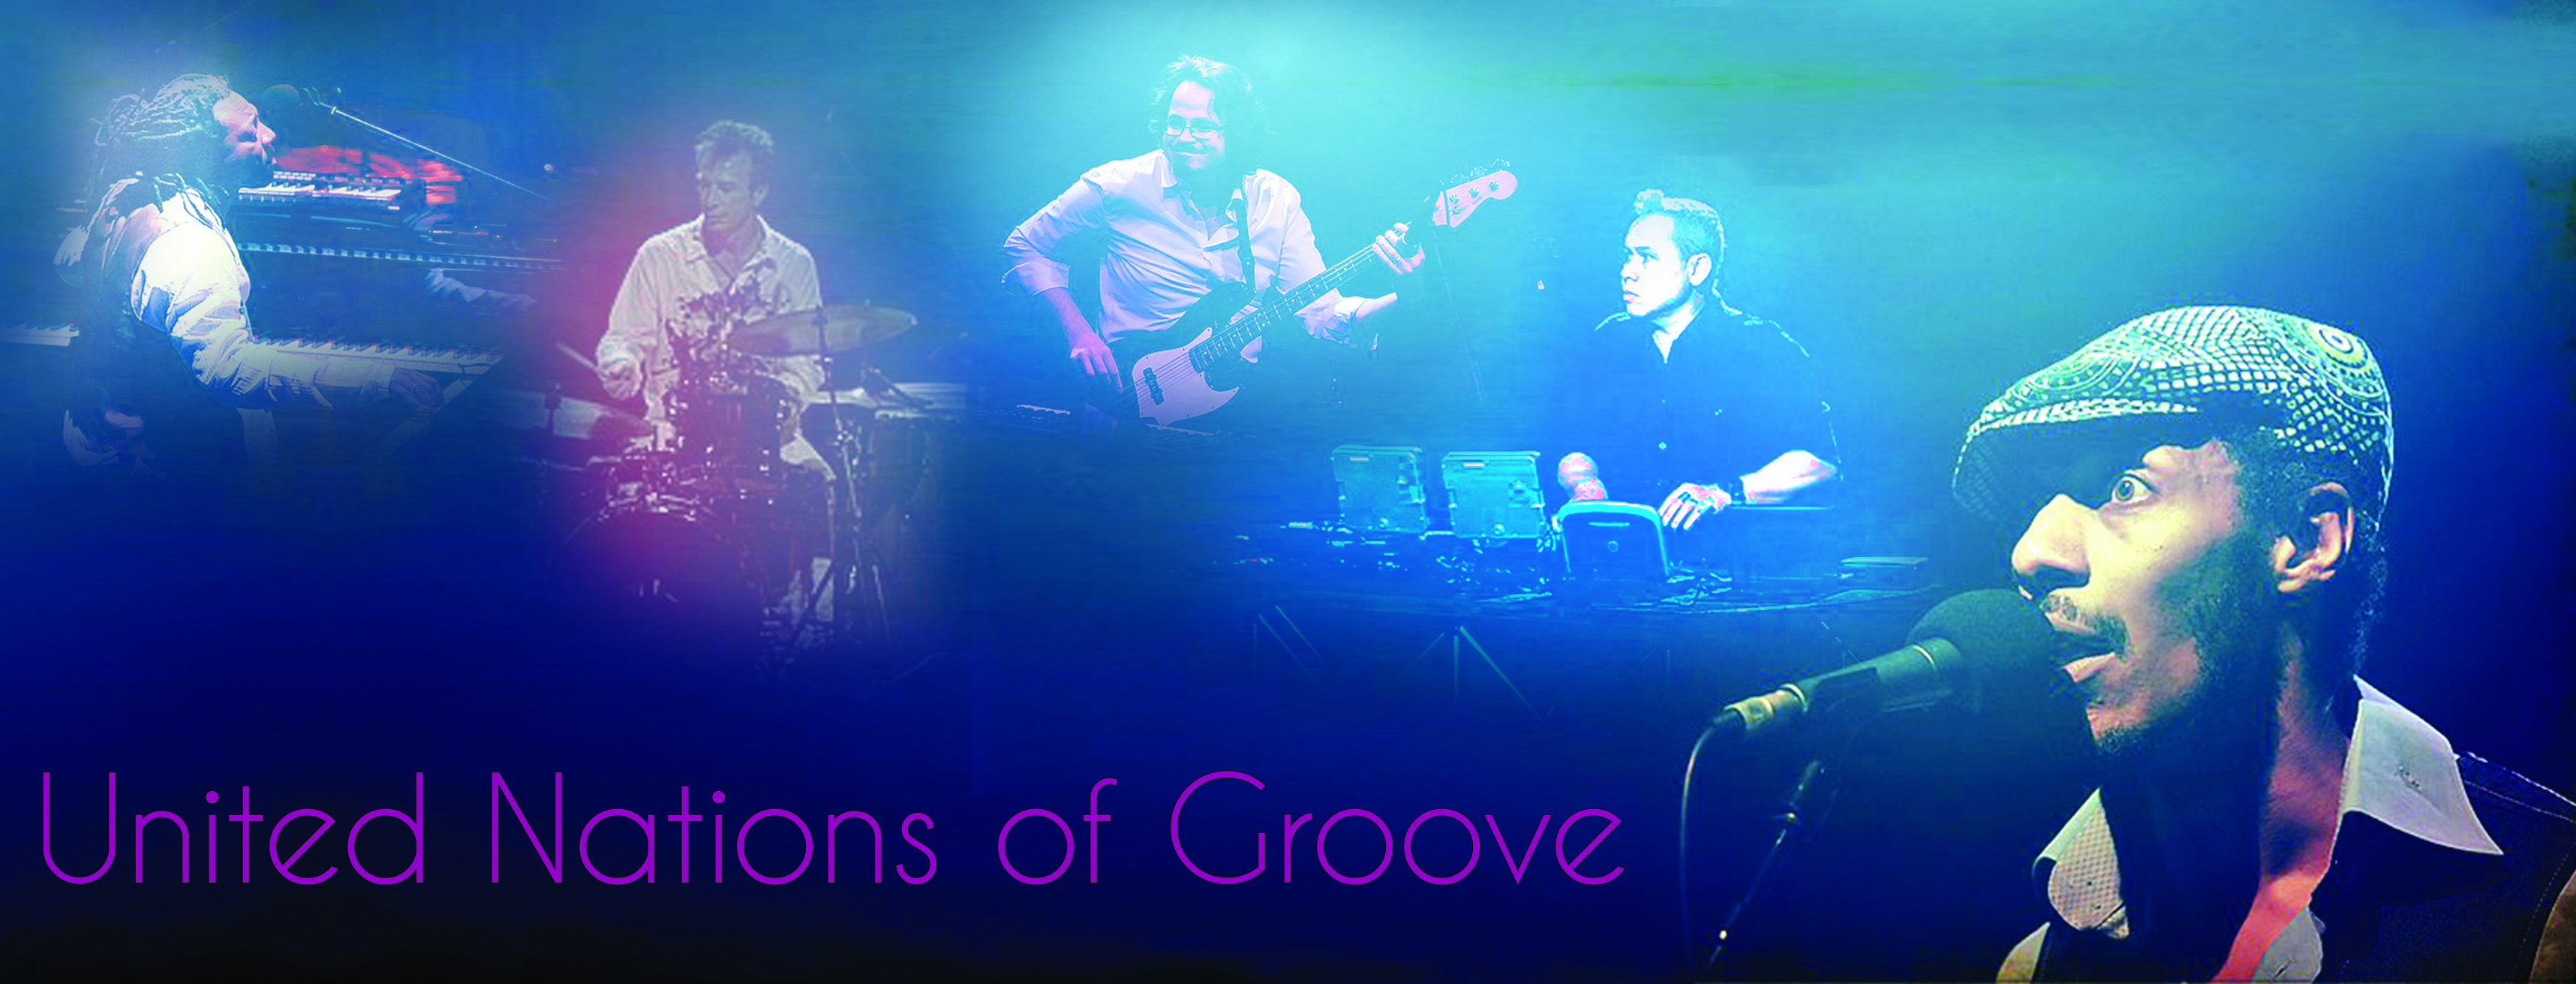 United Nations Of Groove 1.jpg